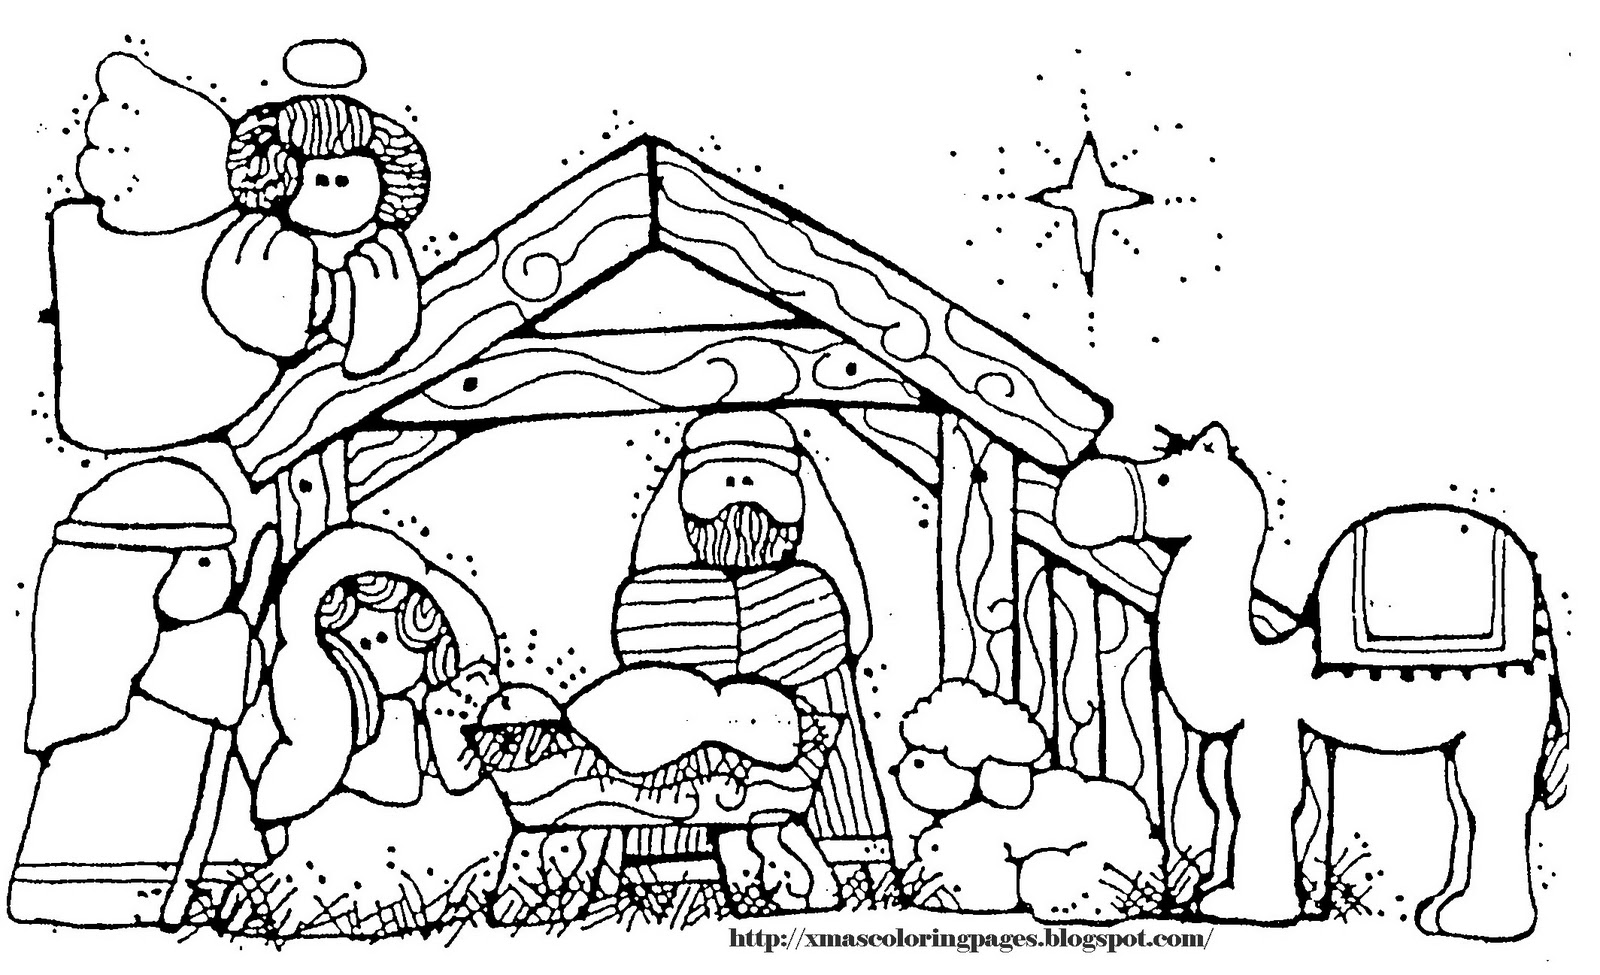 nativity scene coloring book pages - photo#32